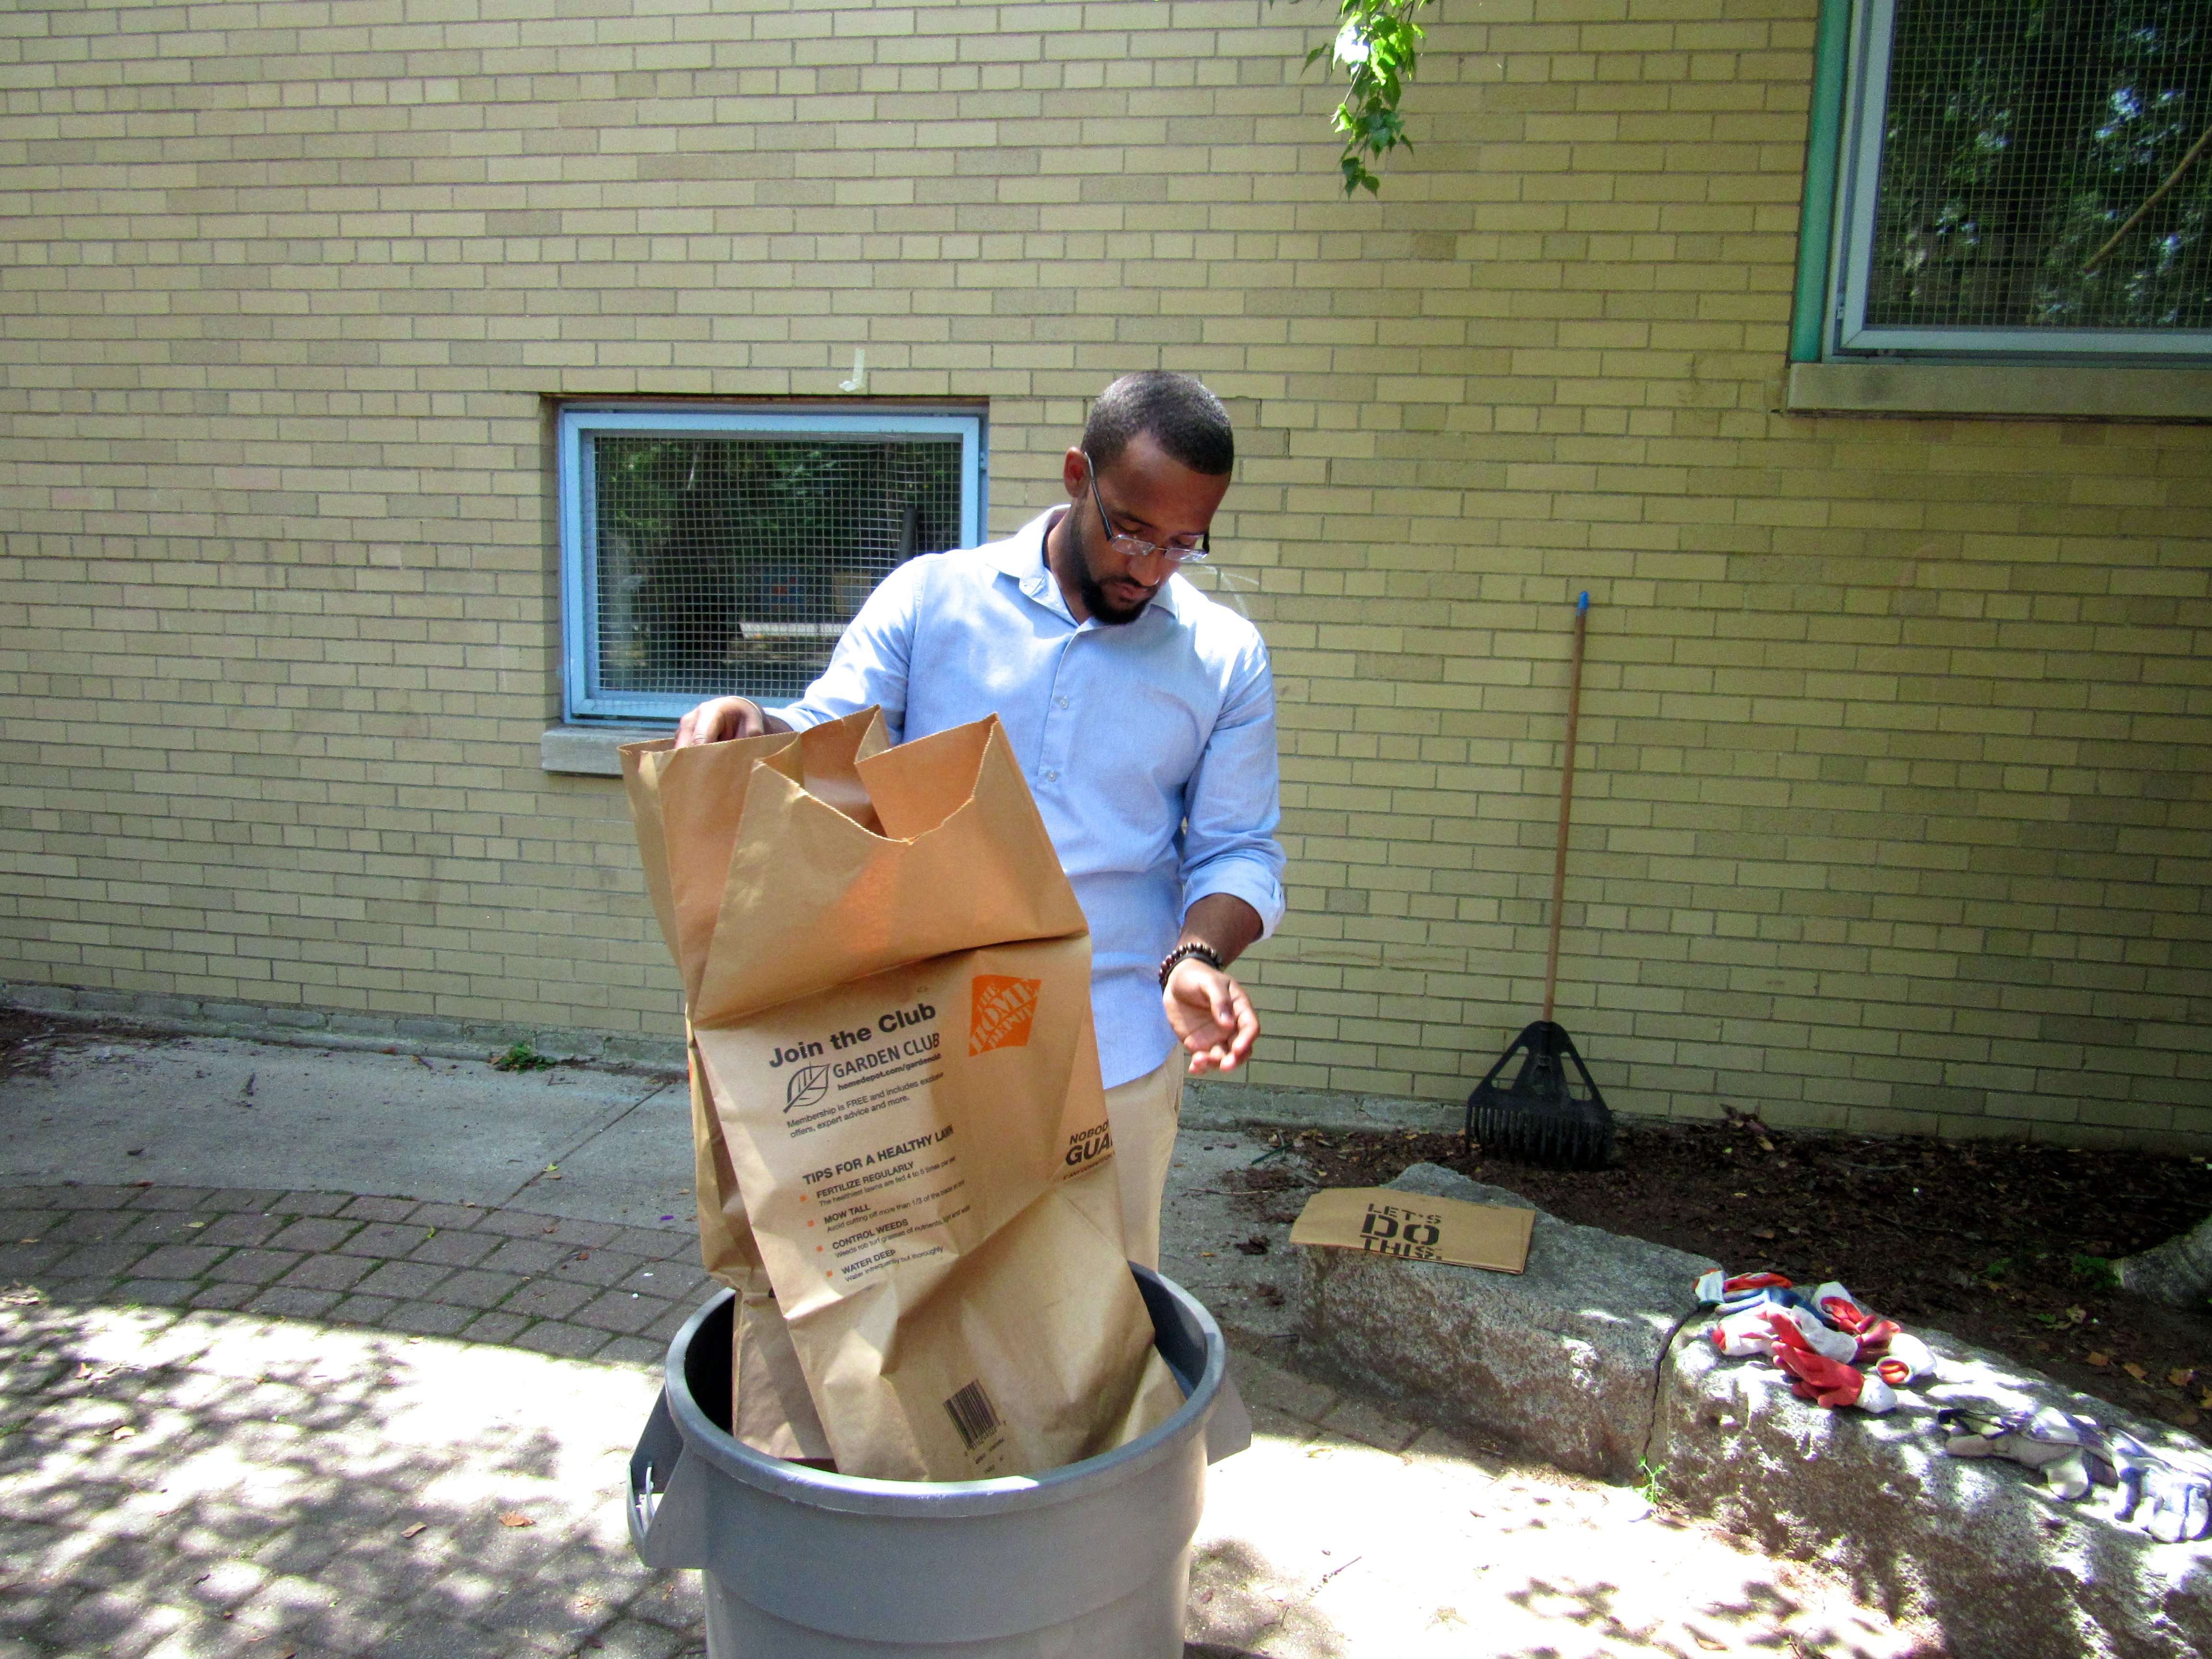 Manny helped contributed the work by cleaning up the area.